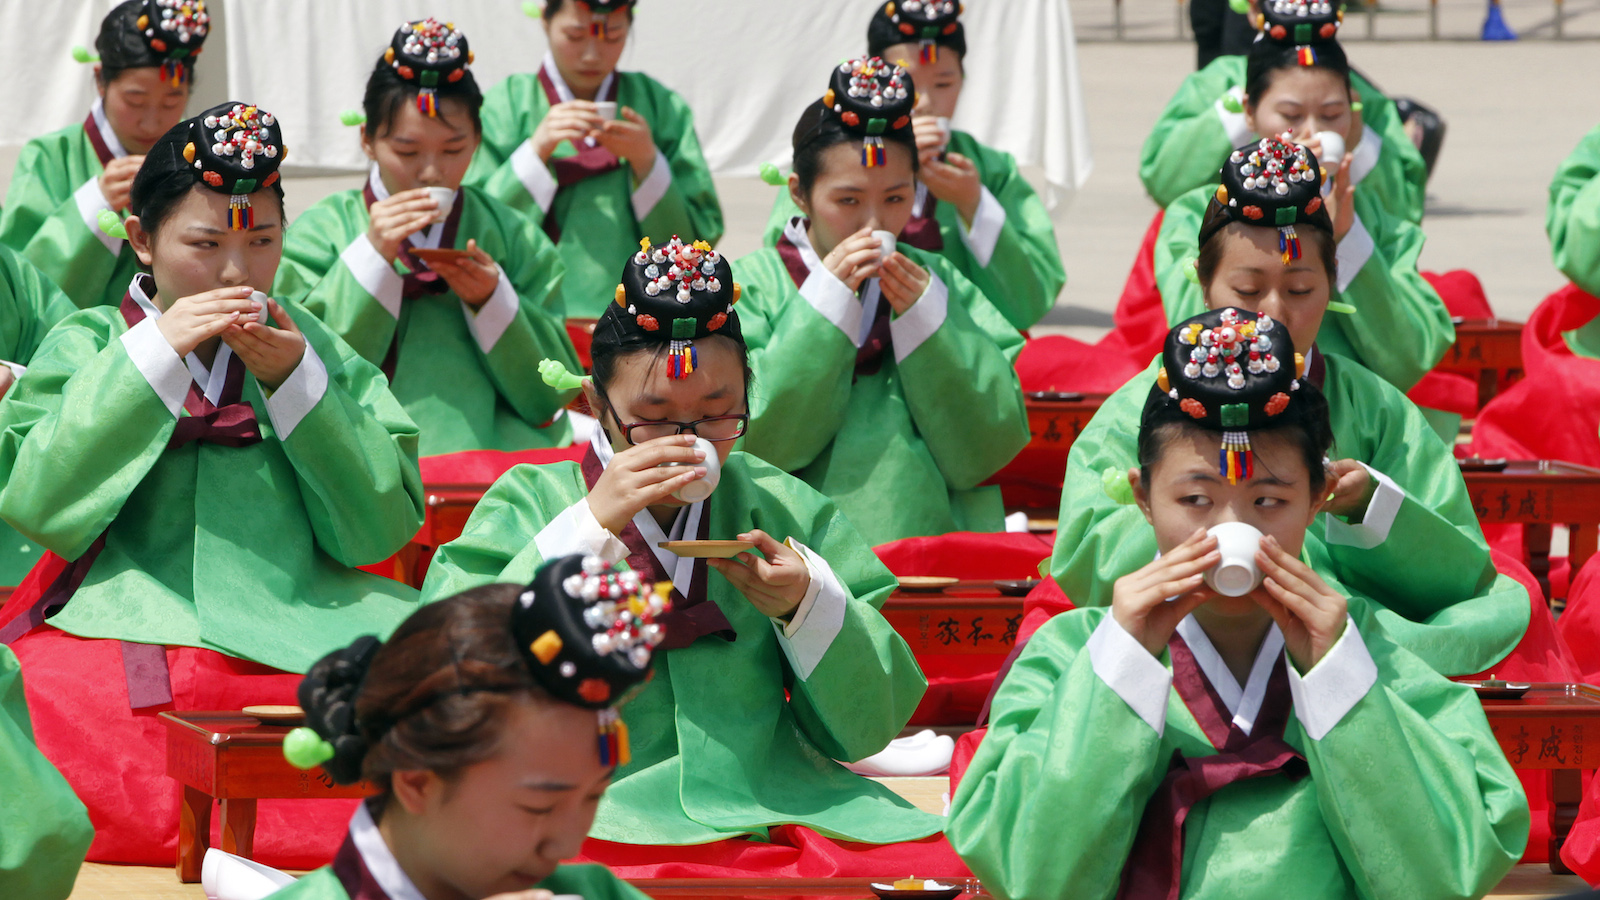 Participants drink tea during a traditional coming-of-age day ceremony in Seoul May 16, 2011. The ceremony marks the entrance of boys and girls into adulthood at the age of 20, and reminds them of their individual responsibilities as young men and women.